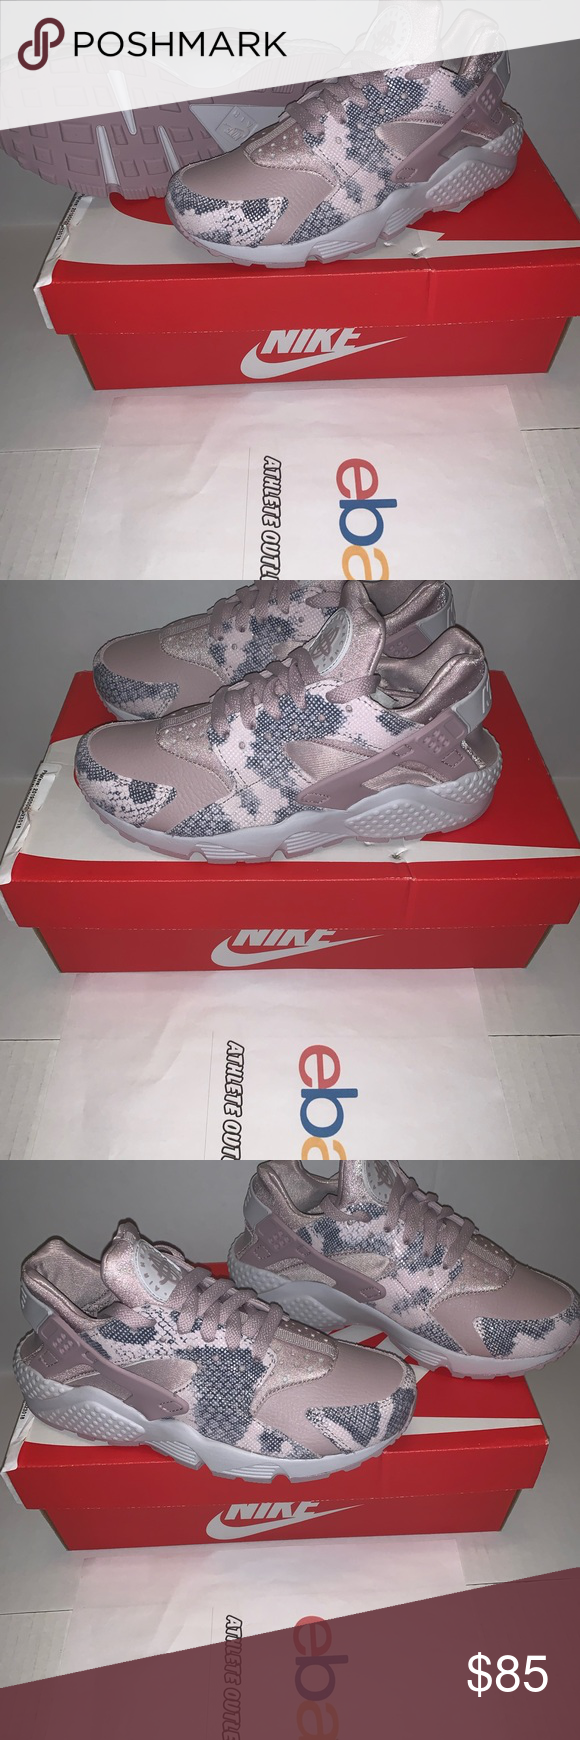 695689450d4e New Womens Nike Air Huarache Run Rose Pink Size 7 New! Womens Nike Air  Huarache Premium